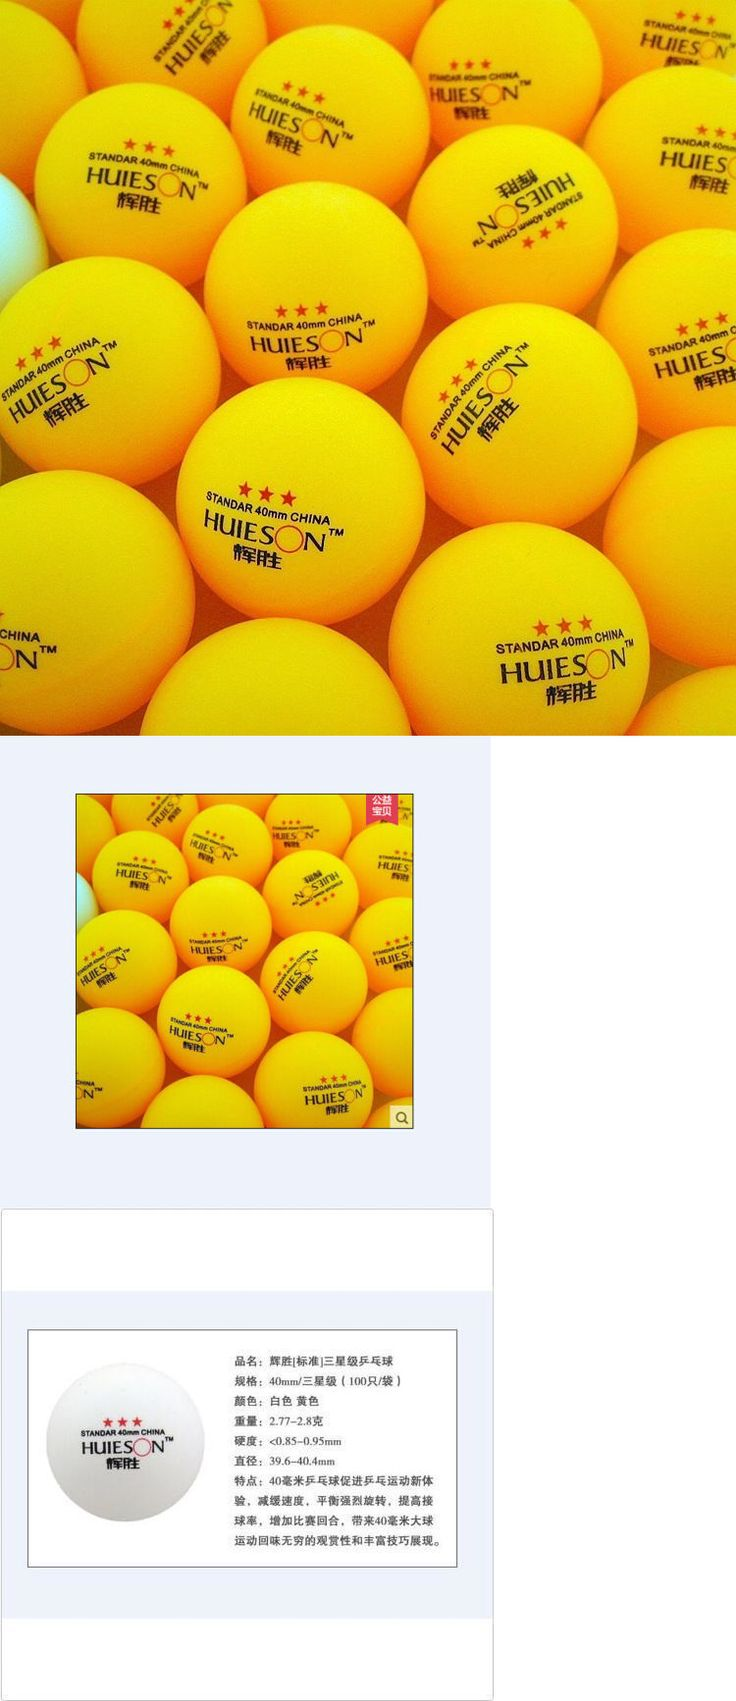 Balls 97073: New 500Pcs 3-Stars 40Mm Olympic Table Tennis Balls Pingpong Balls Orange Huieson -> BUY IT NOW ONLY: $90 on eBay!